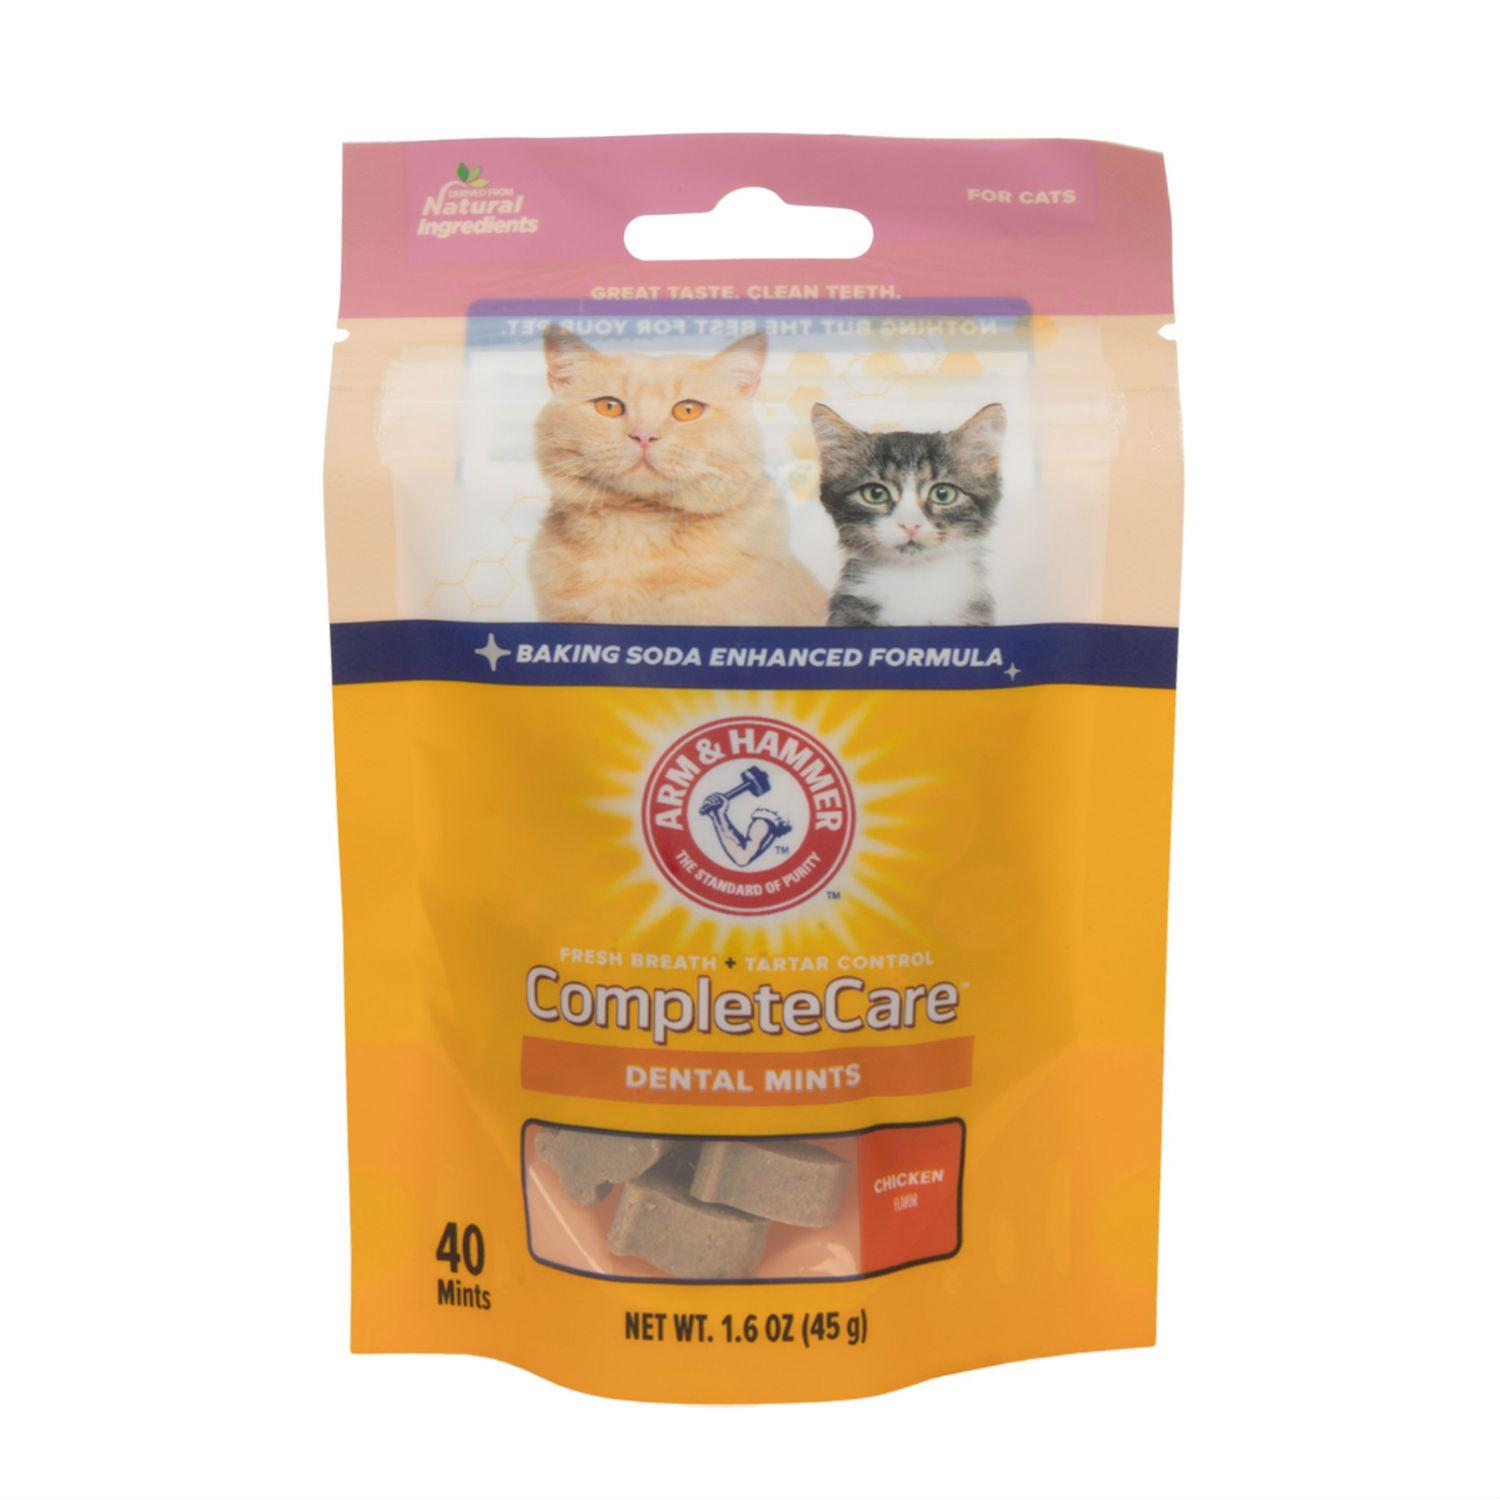 Arm & Hammer Dental Complete Care Mints Cat Treat - Chicken